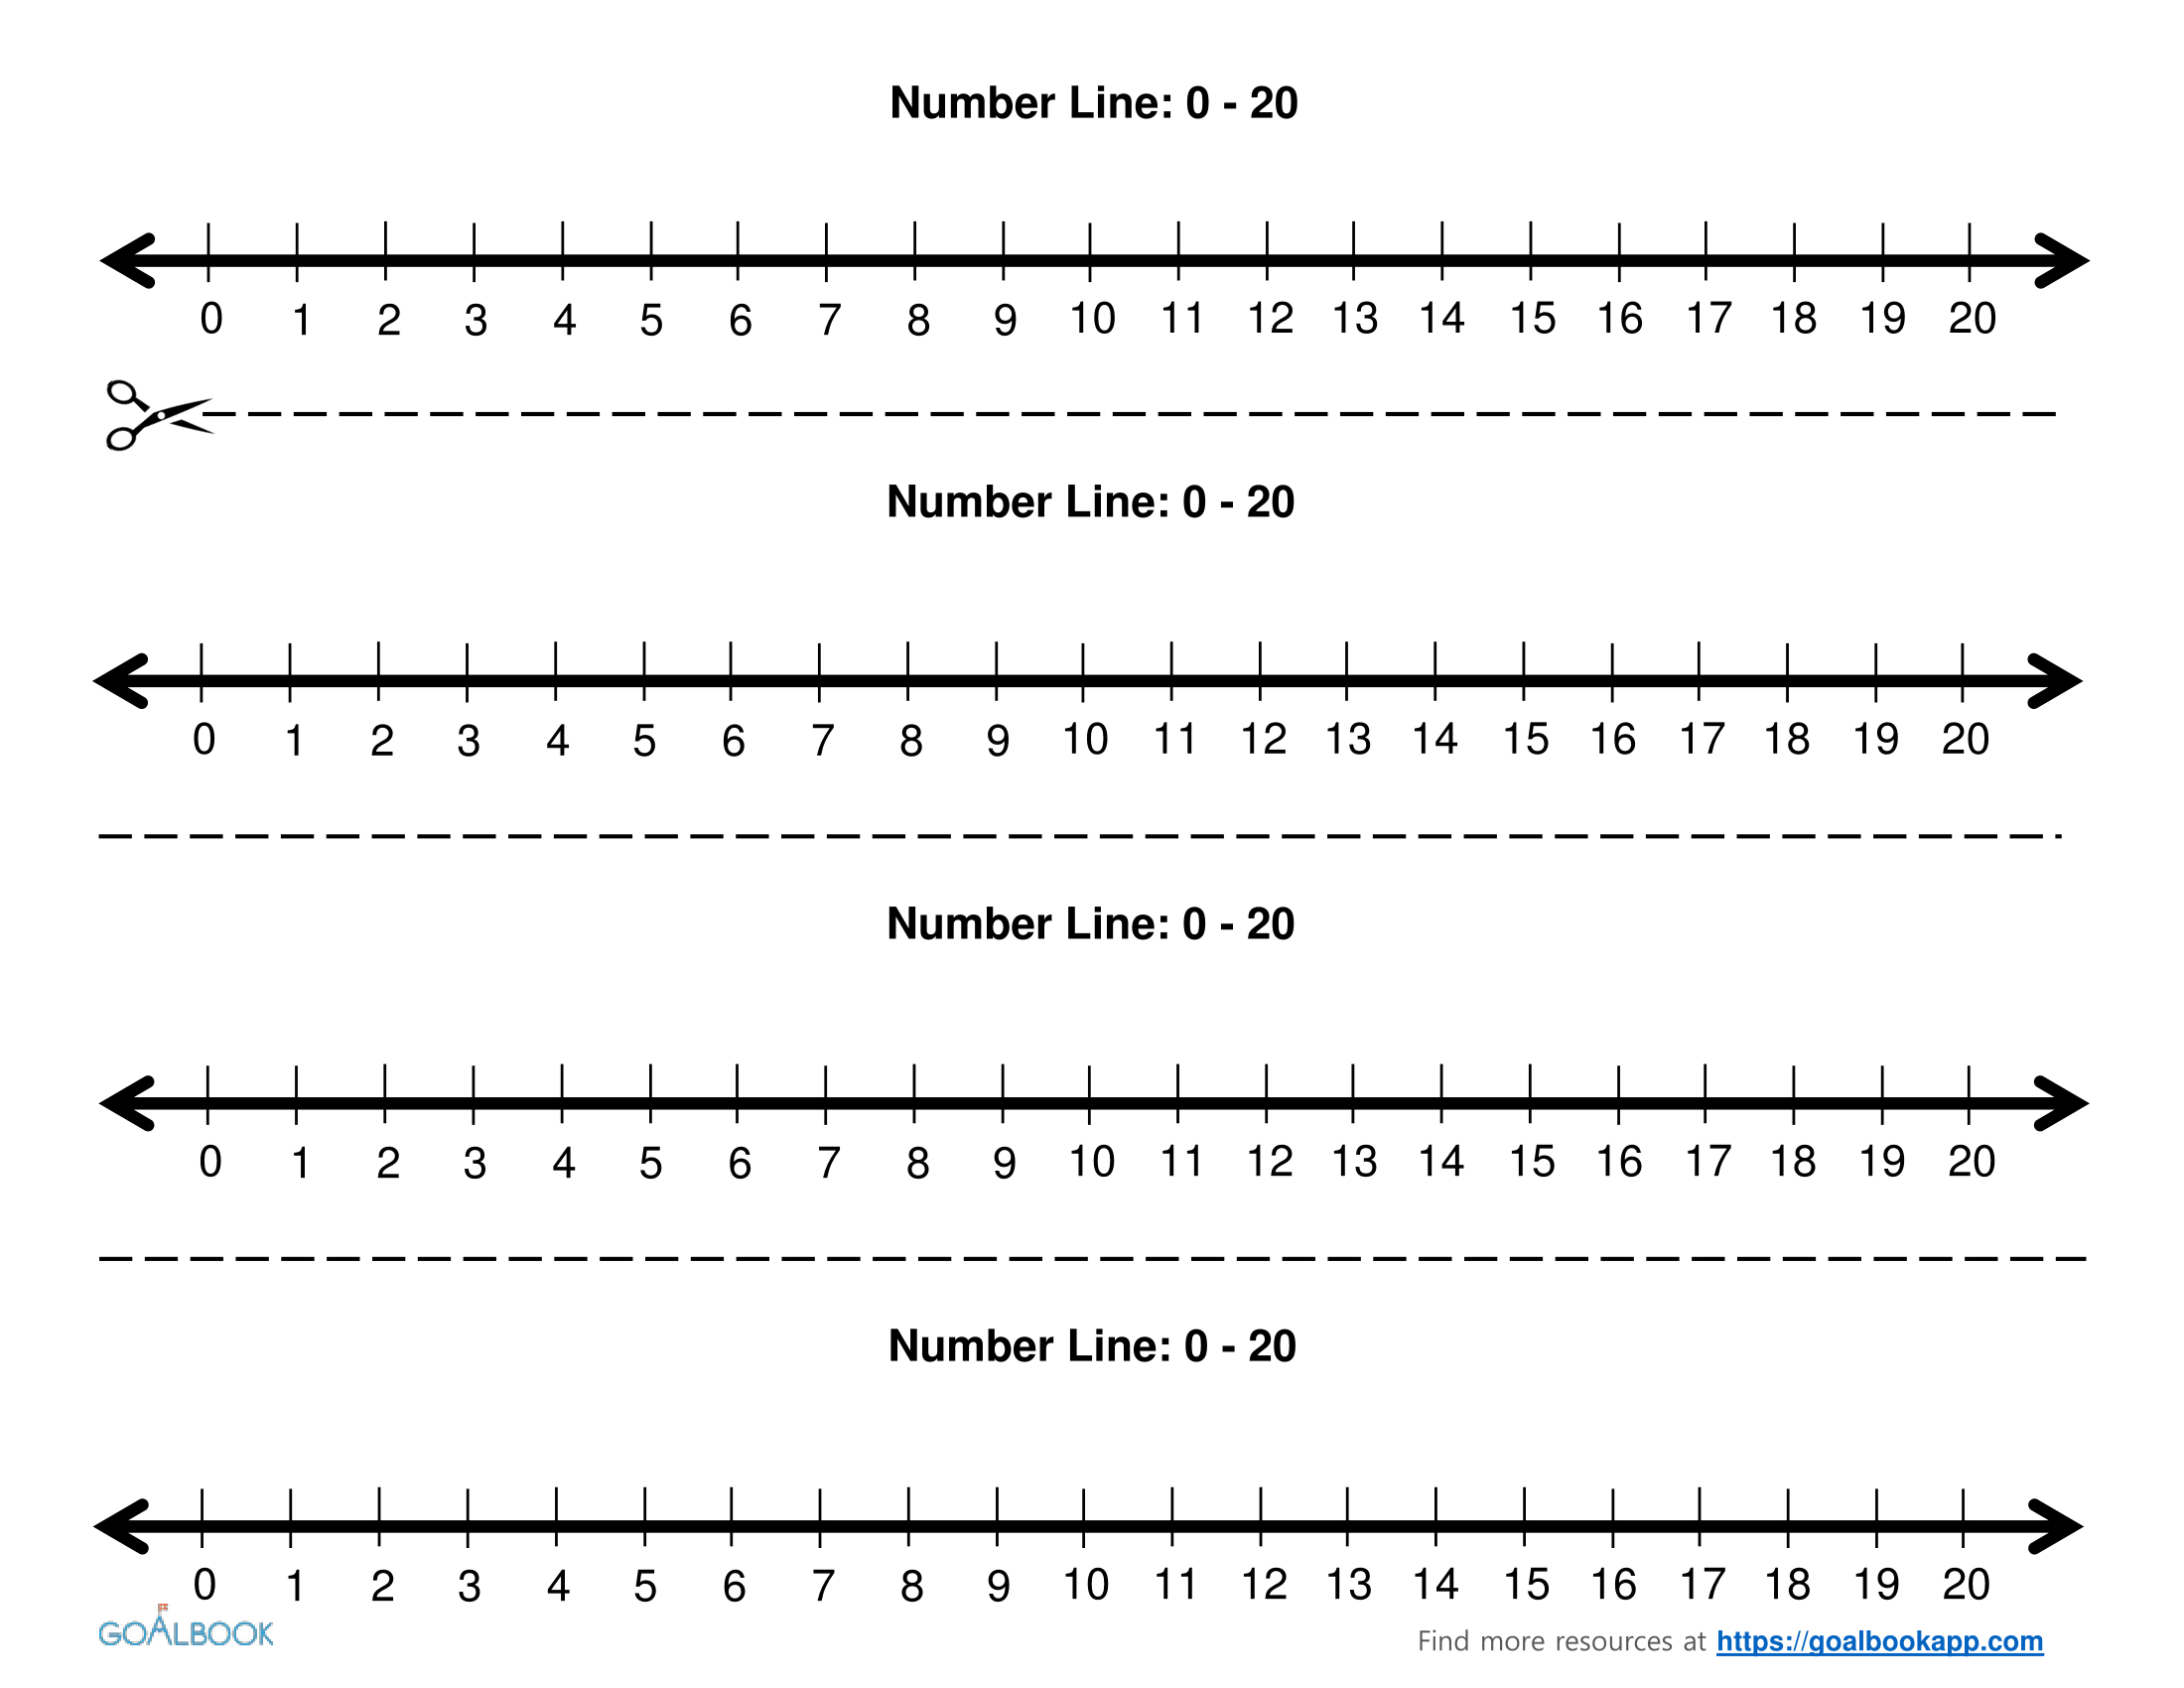 graphic about Number Line to 20 Printable named Totally free Printable Amount Line 0 20 Absolutely free Printable